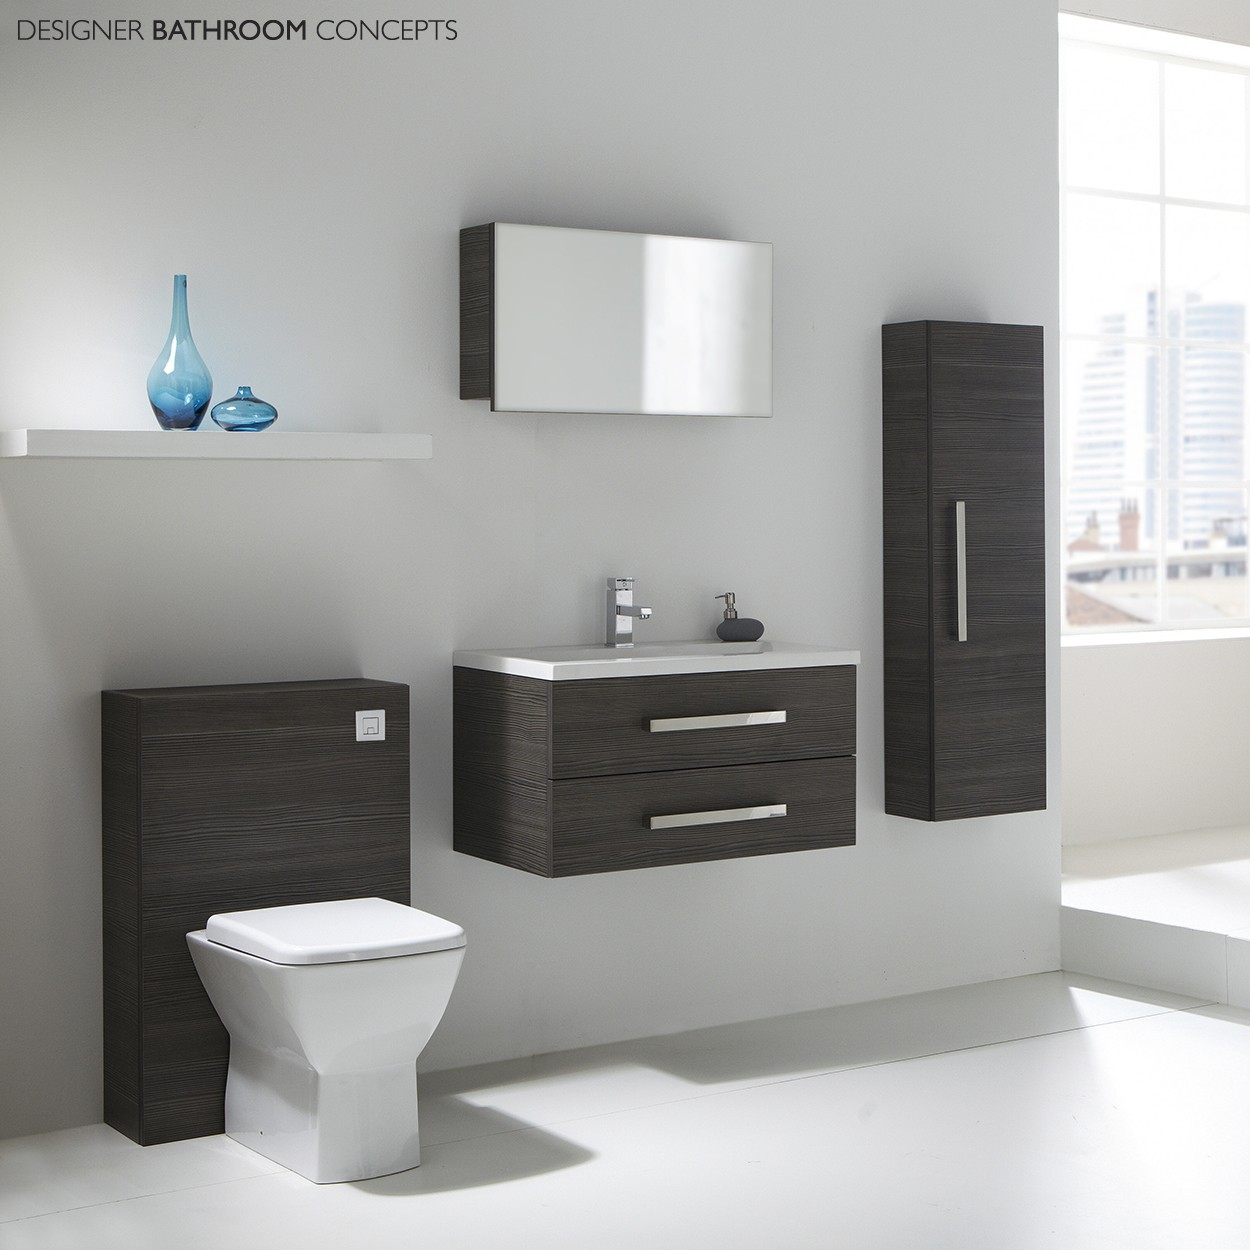 home bathroom furnishings photo - 6